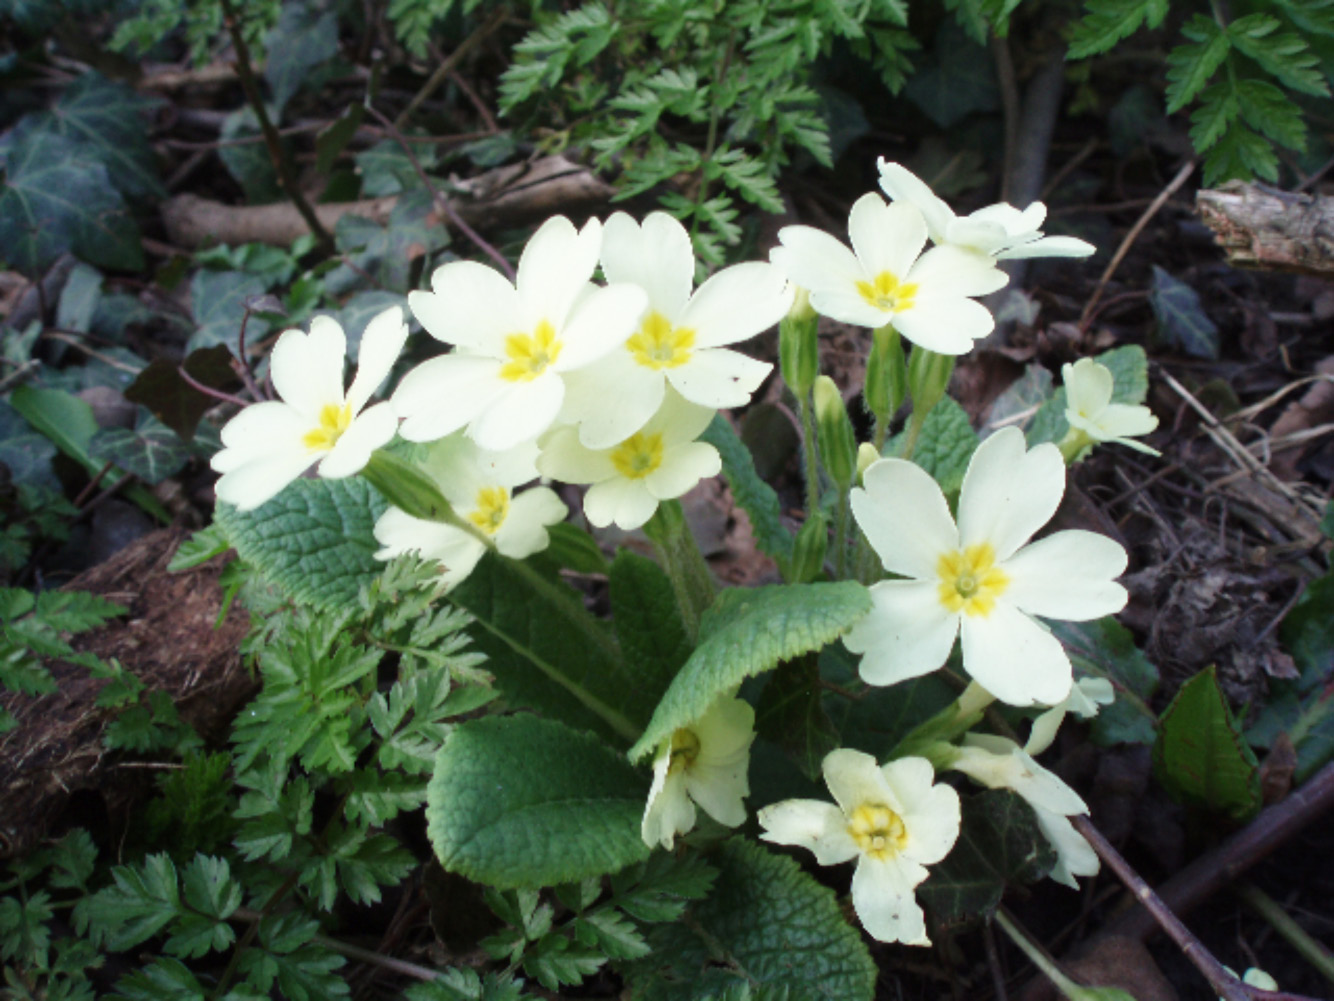 Primroses are the wild (and infinitely preferable) cousin of the garish garden centre Polyanthus